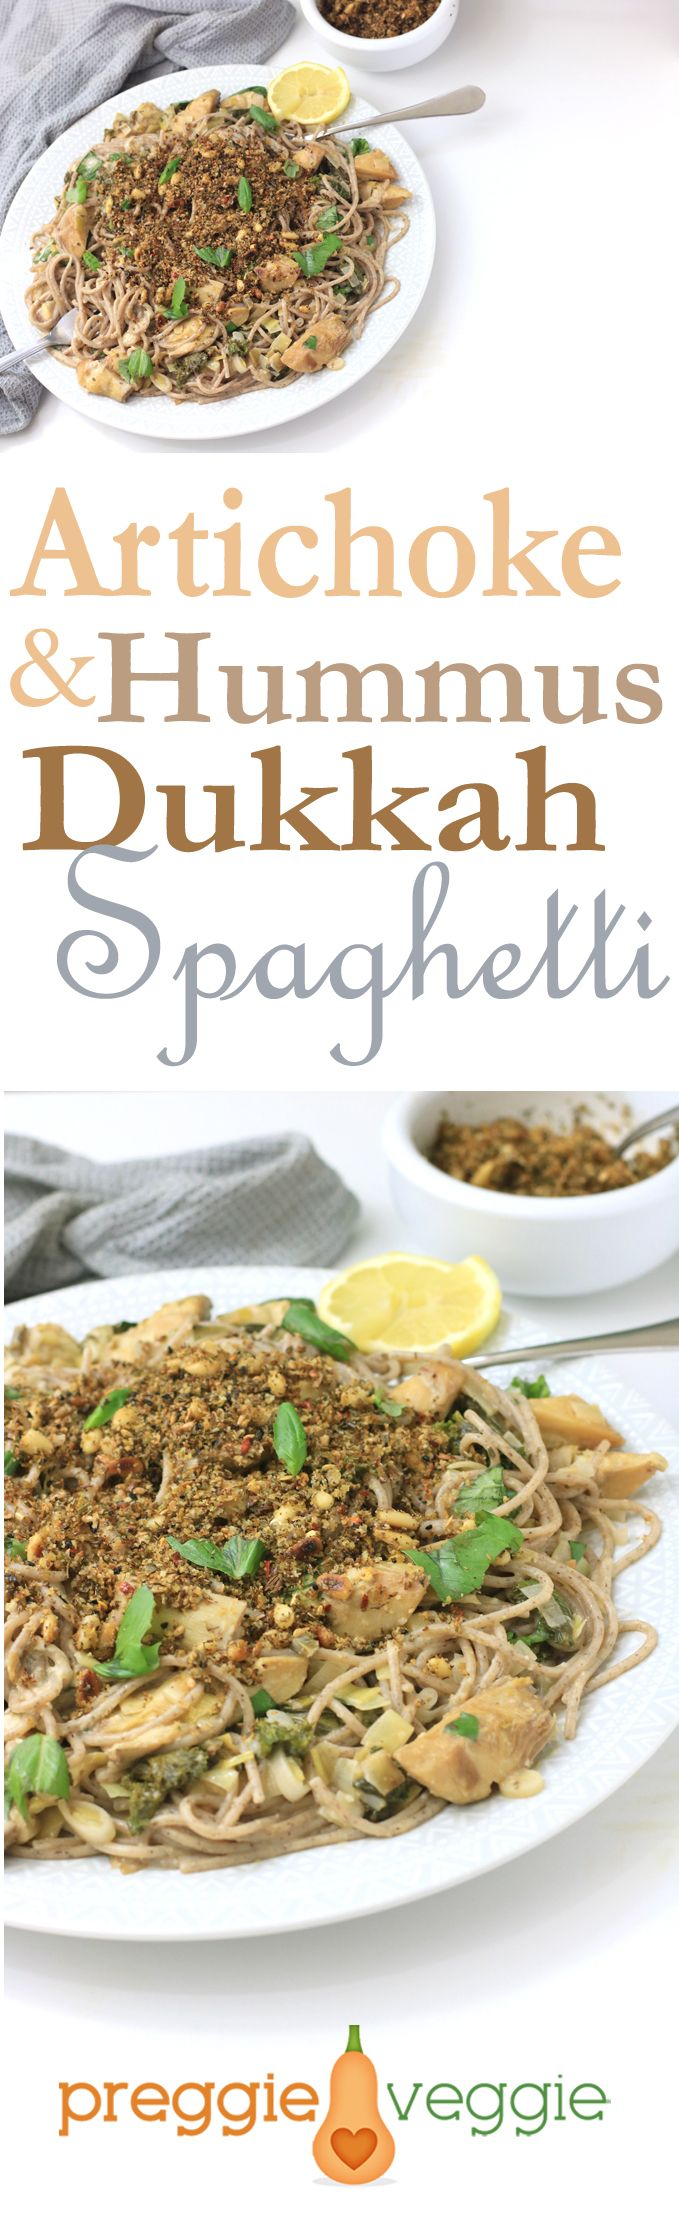 A middle eastern pasta feast with a difference! Artichoke spaghetti with a simple, hummus sauce and a crispy, nutritious dukkah topping. #veganrecipe #veganfood #veggierecipe #veggiefood